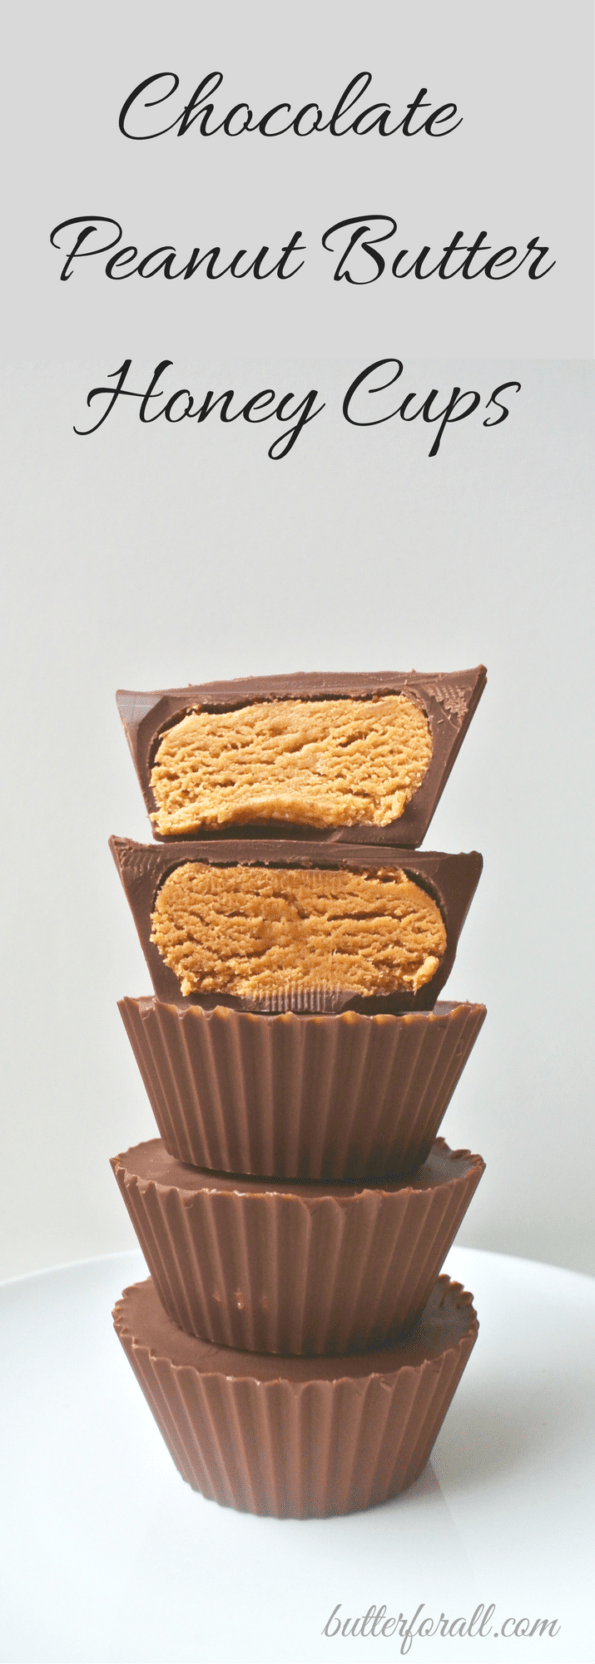 Chocolate Peanut Butter Honey Cups